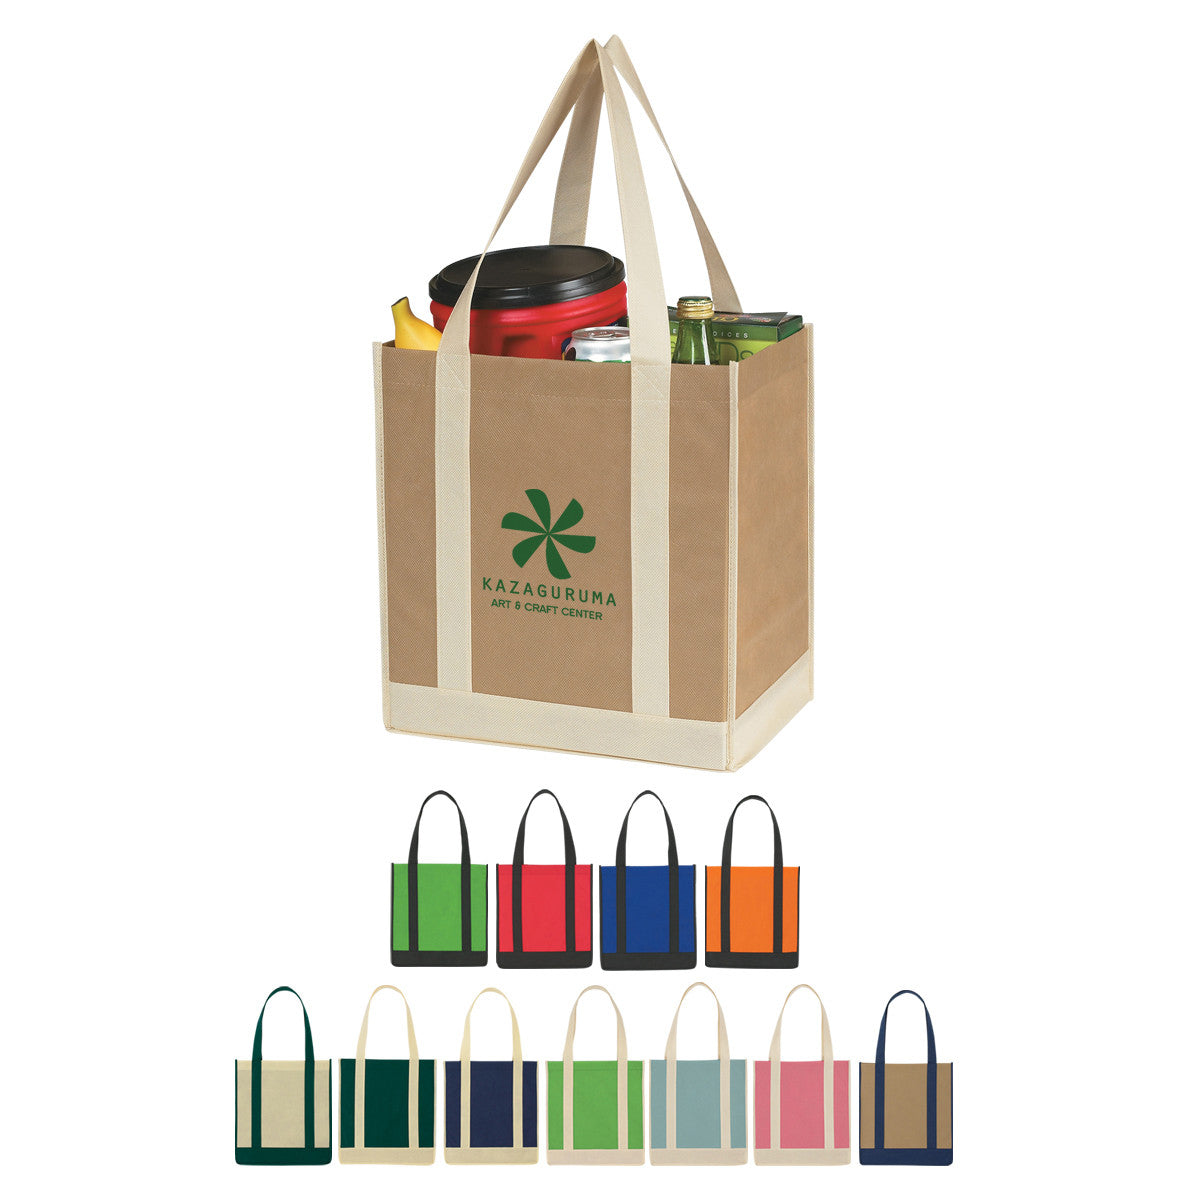 Two-Tone Grocery Tote Bags